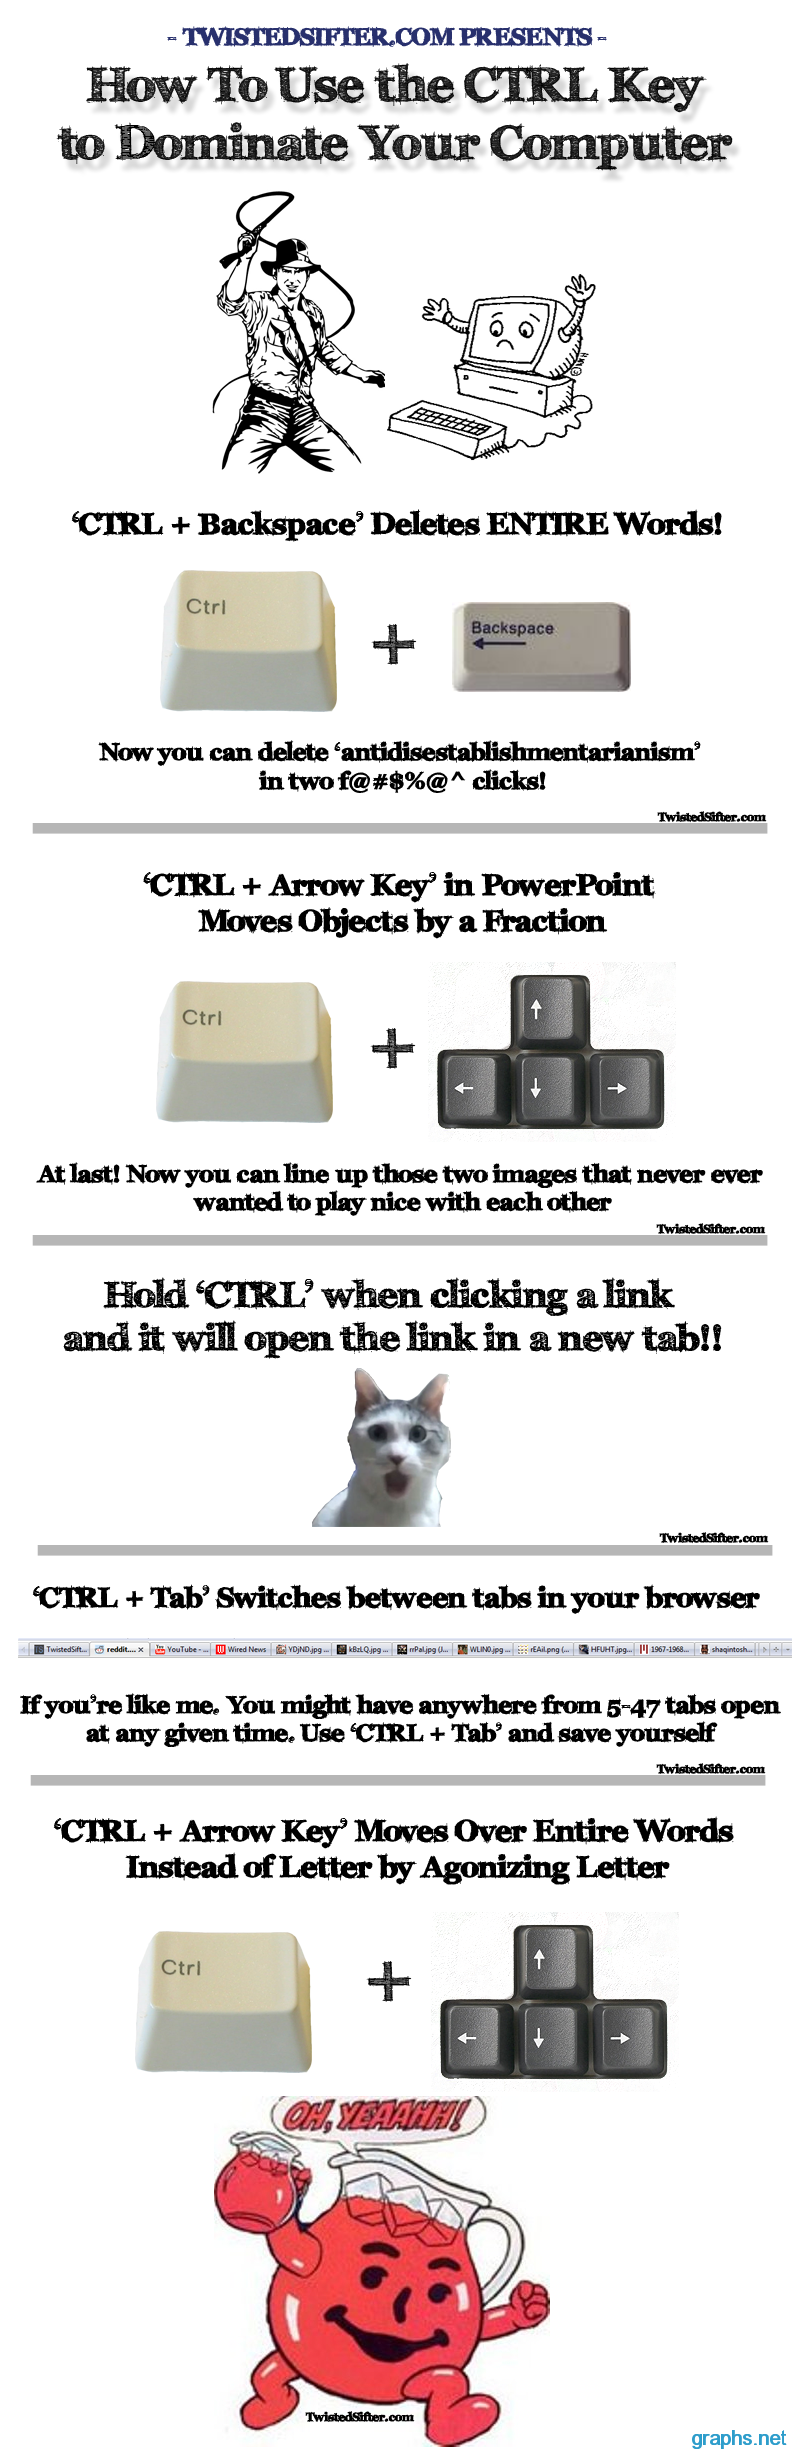 CTRL Key Benefits